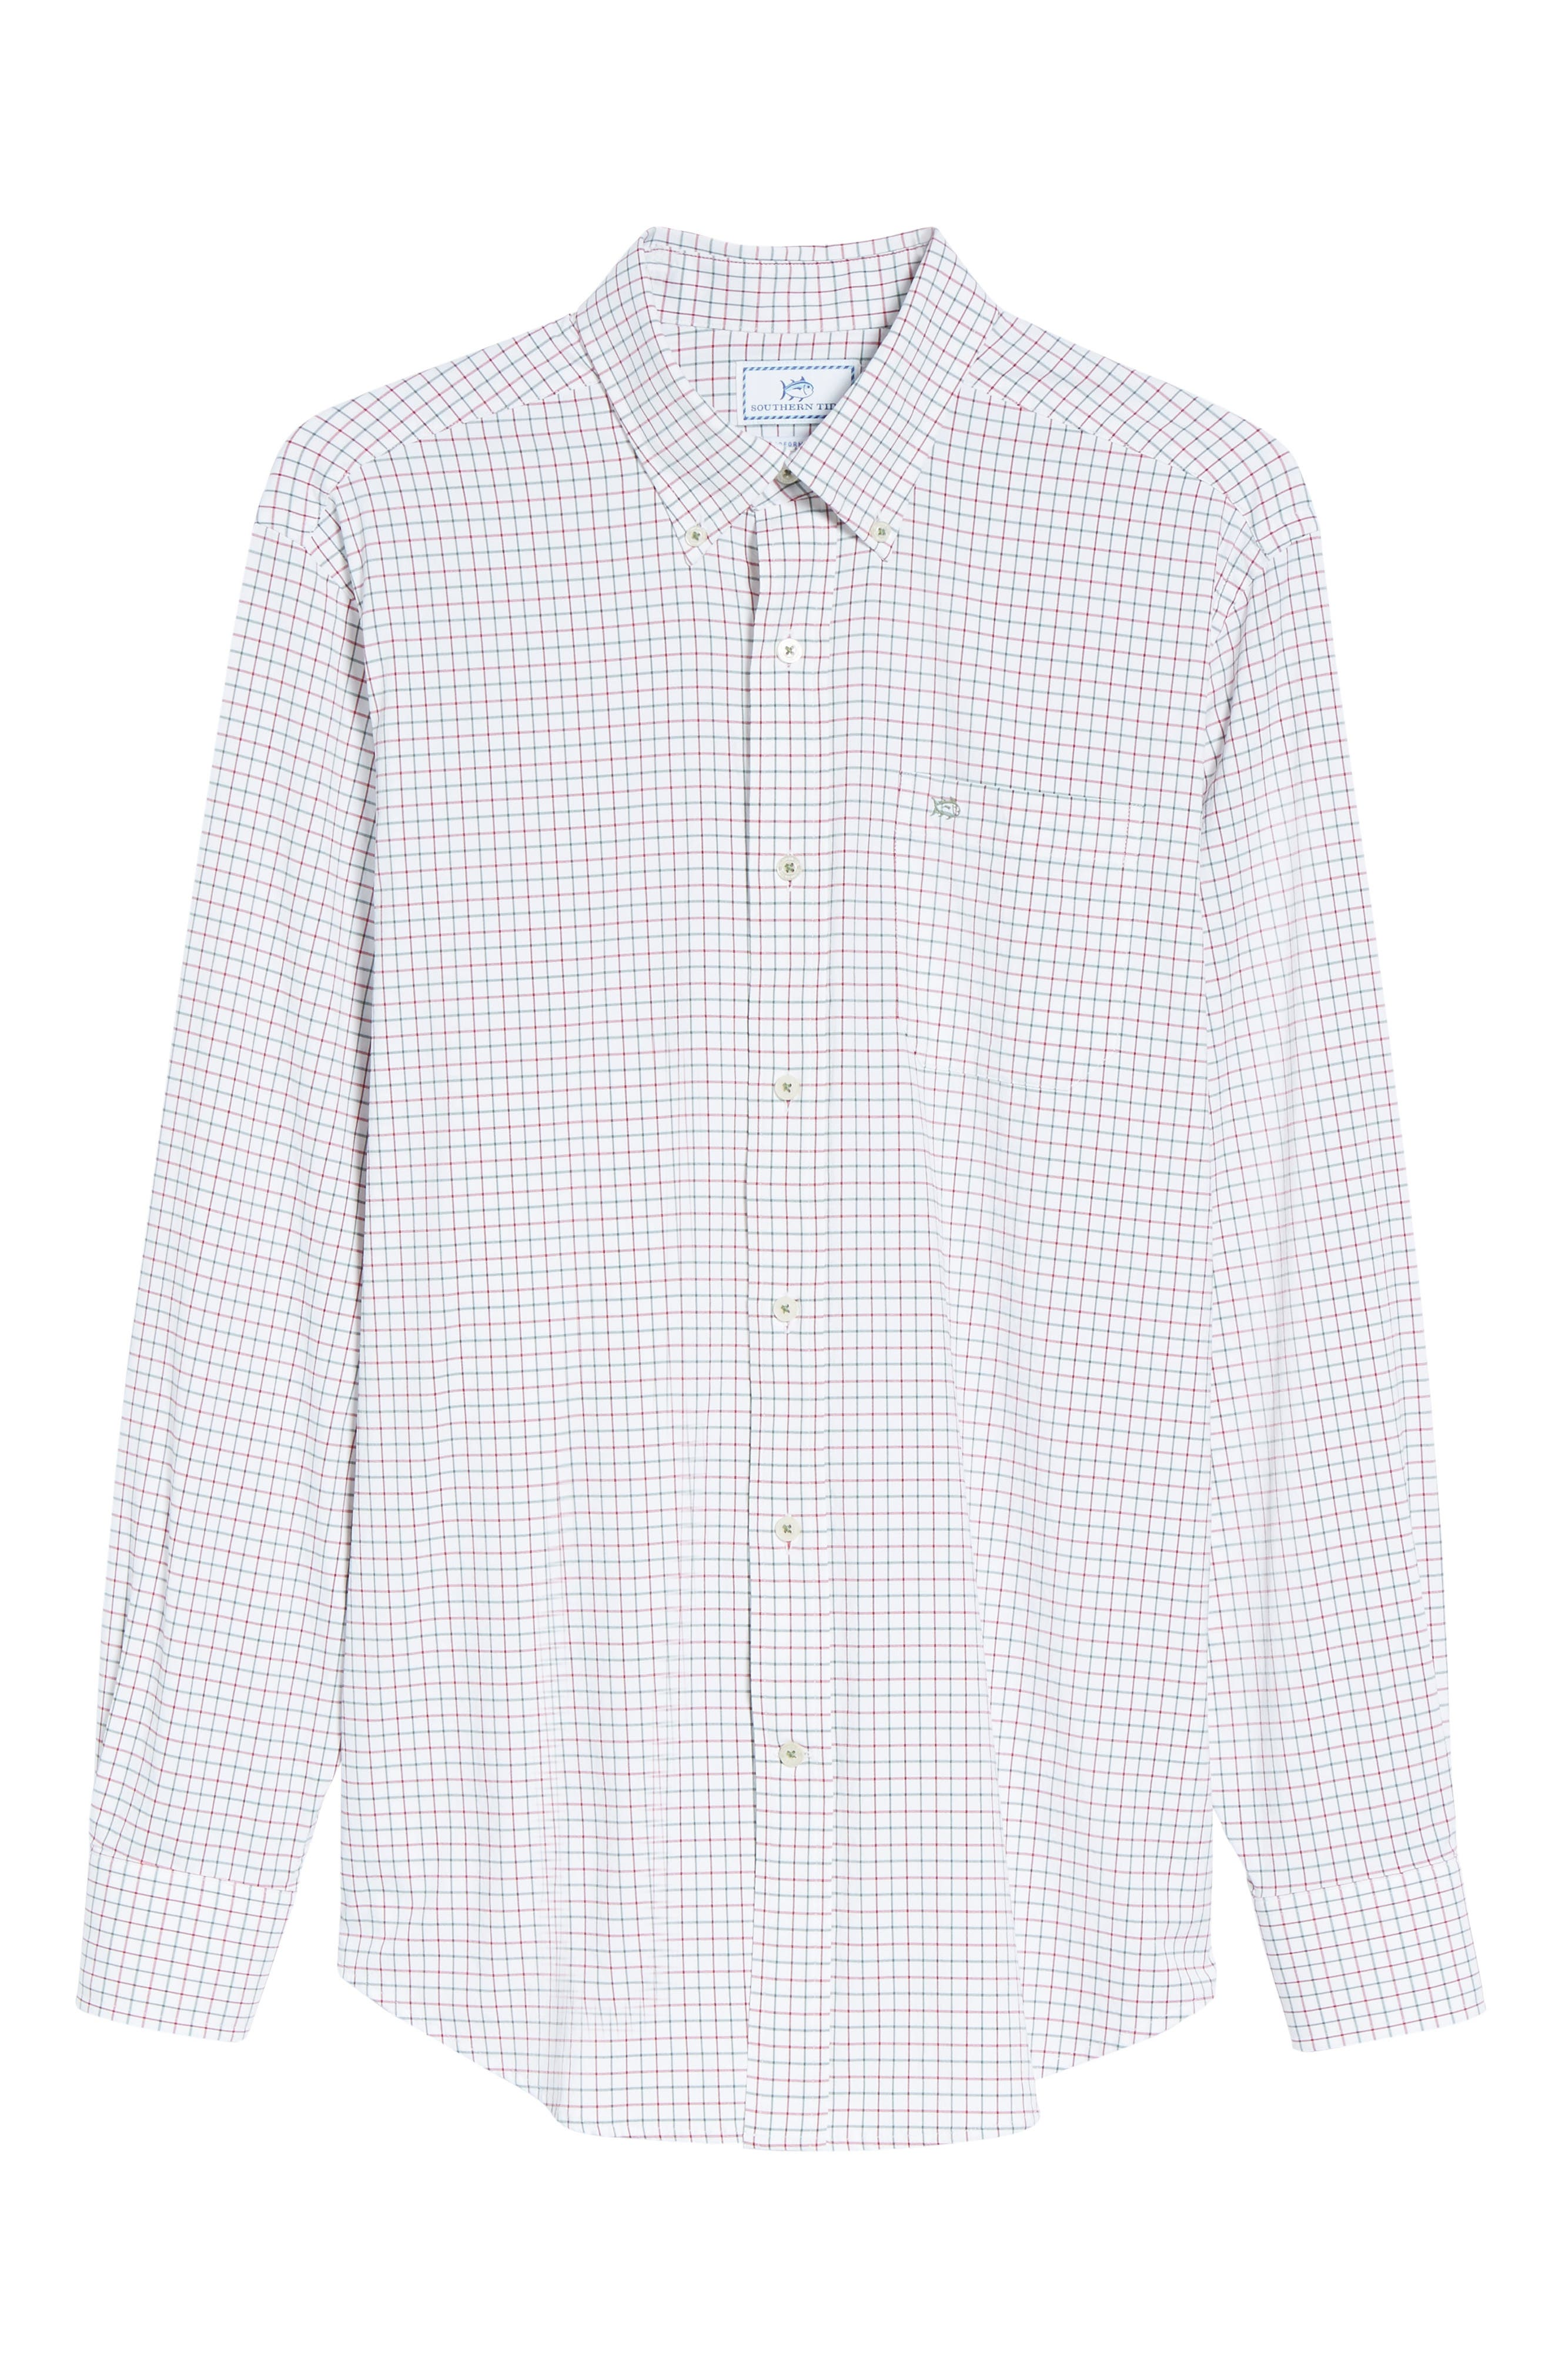 Cromwell Tattersall Performance Classic Fit Sport Shirt,                             Alternate thumbnail 6, color,                             Classic White